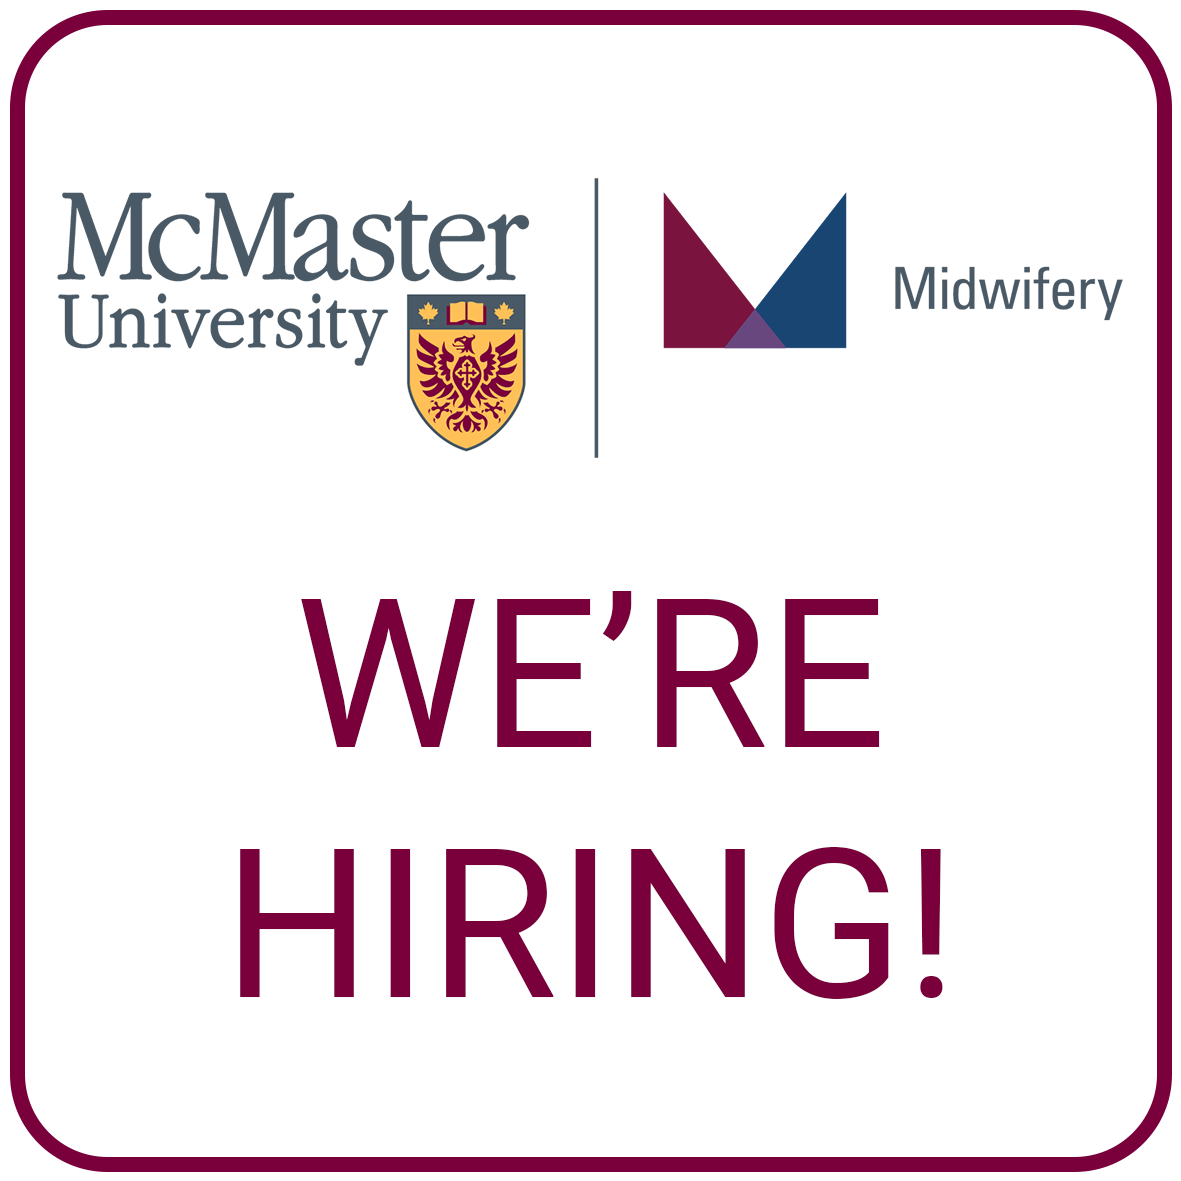 """The McMaster Midwifery logo followed by the phrase """"We're hiring!"""""""